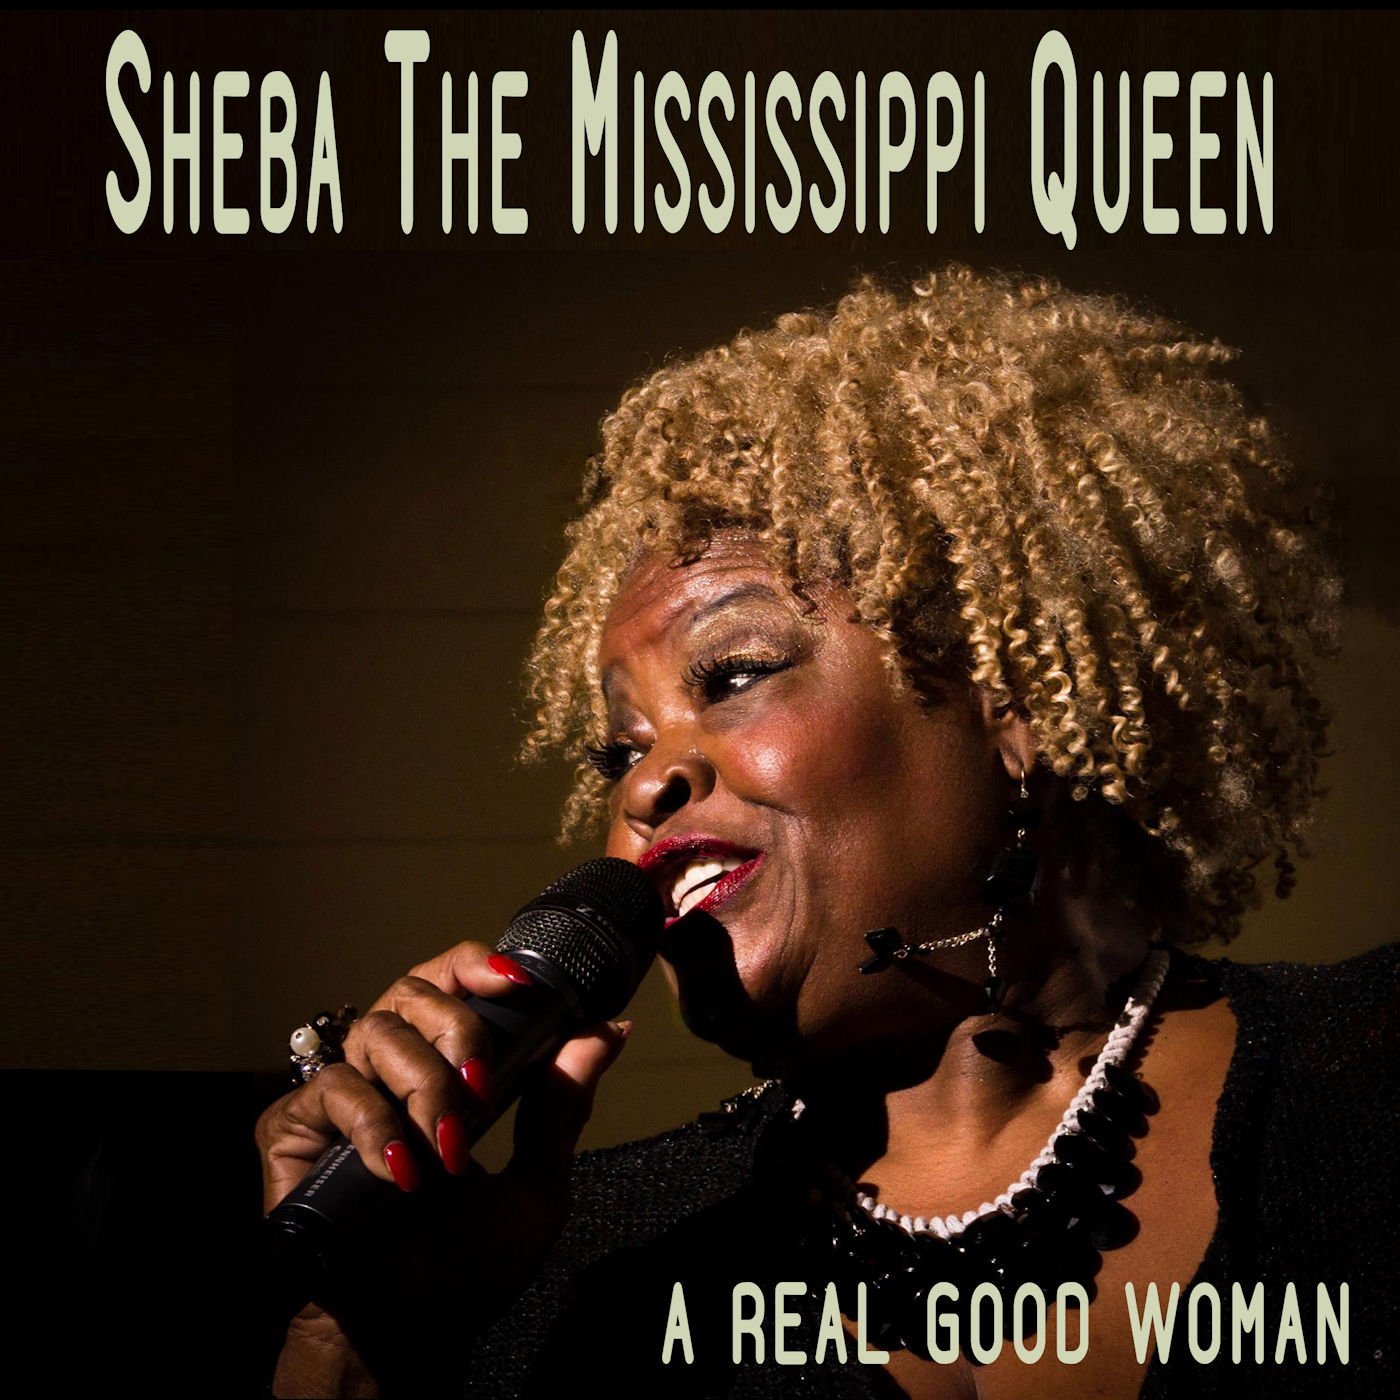 Sheba The Mississippi Queen